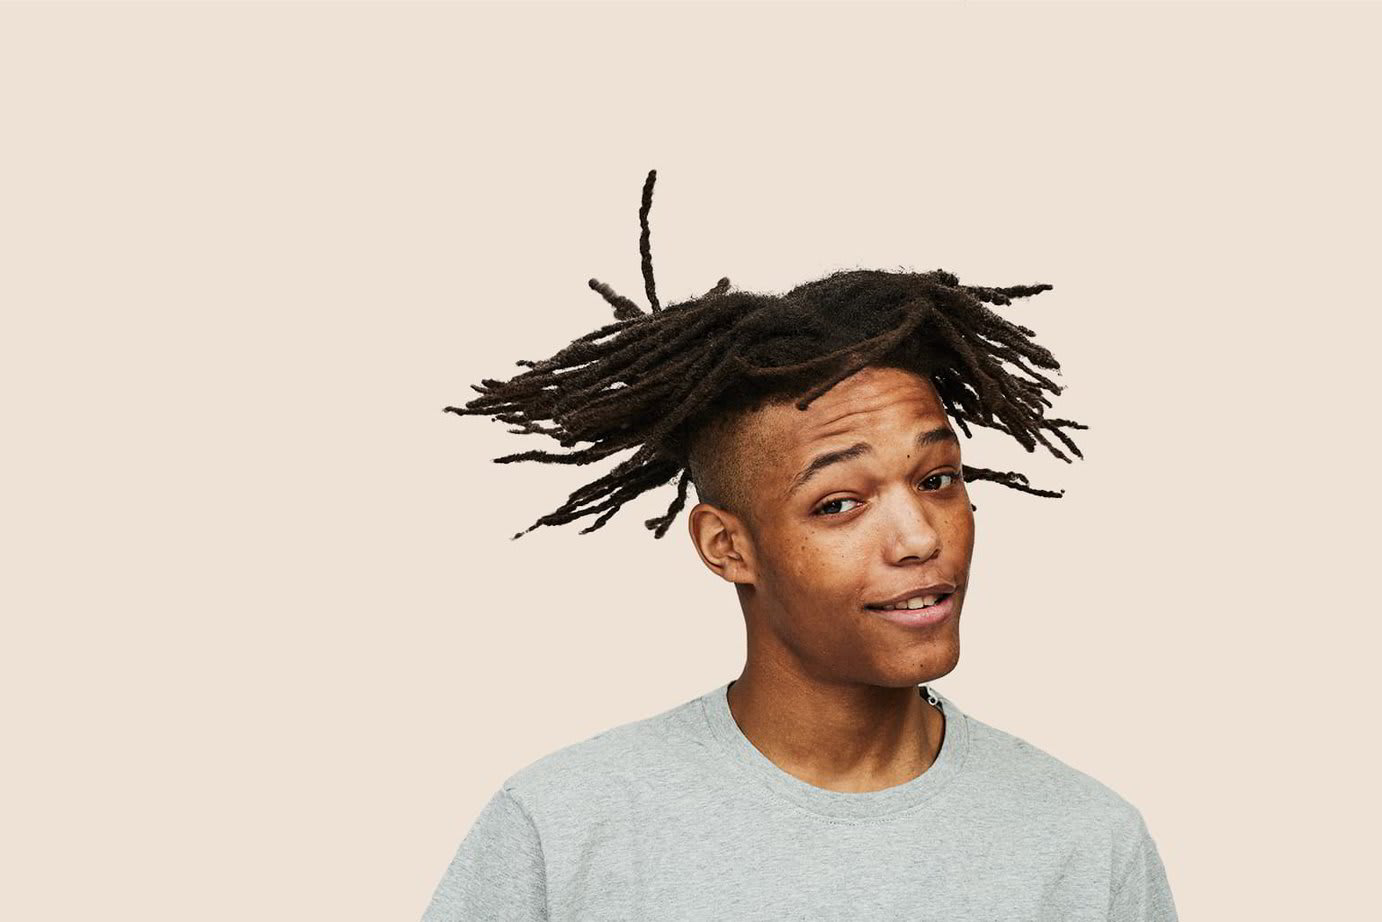 A young man showing off his hair